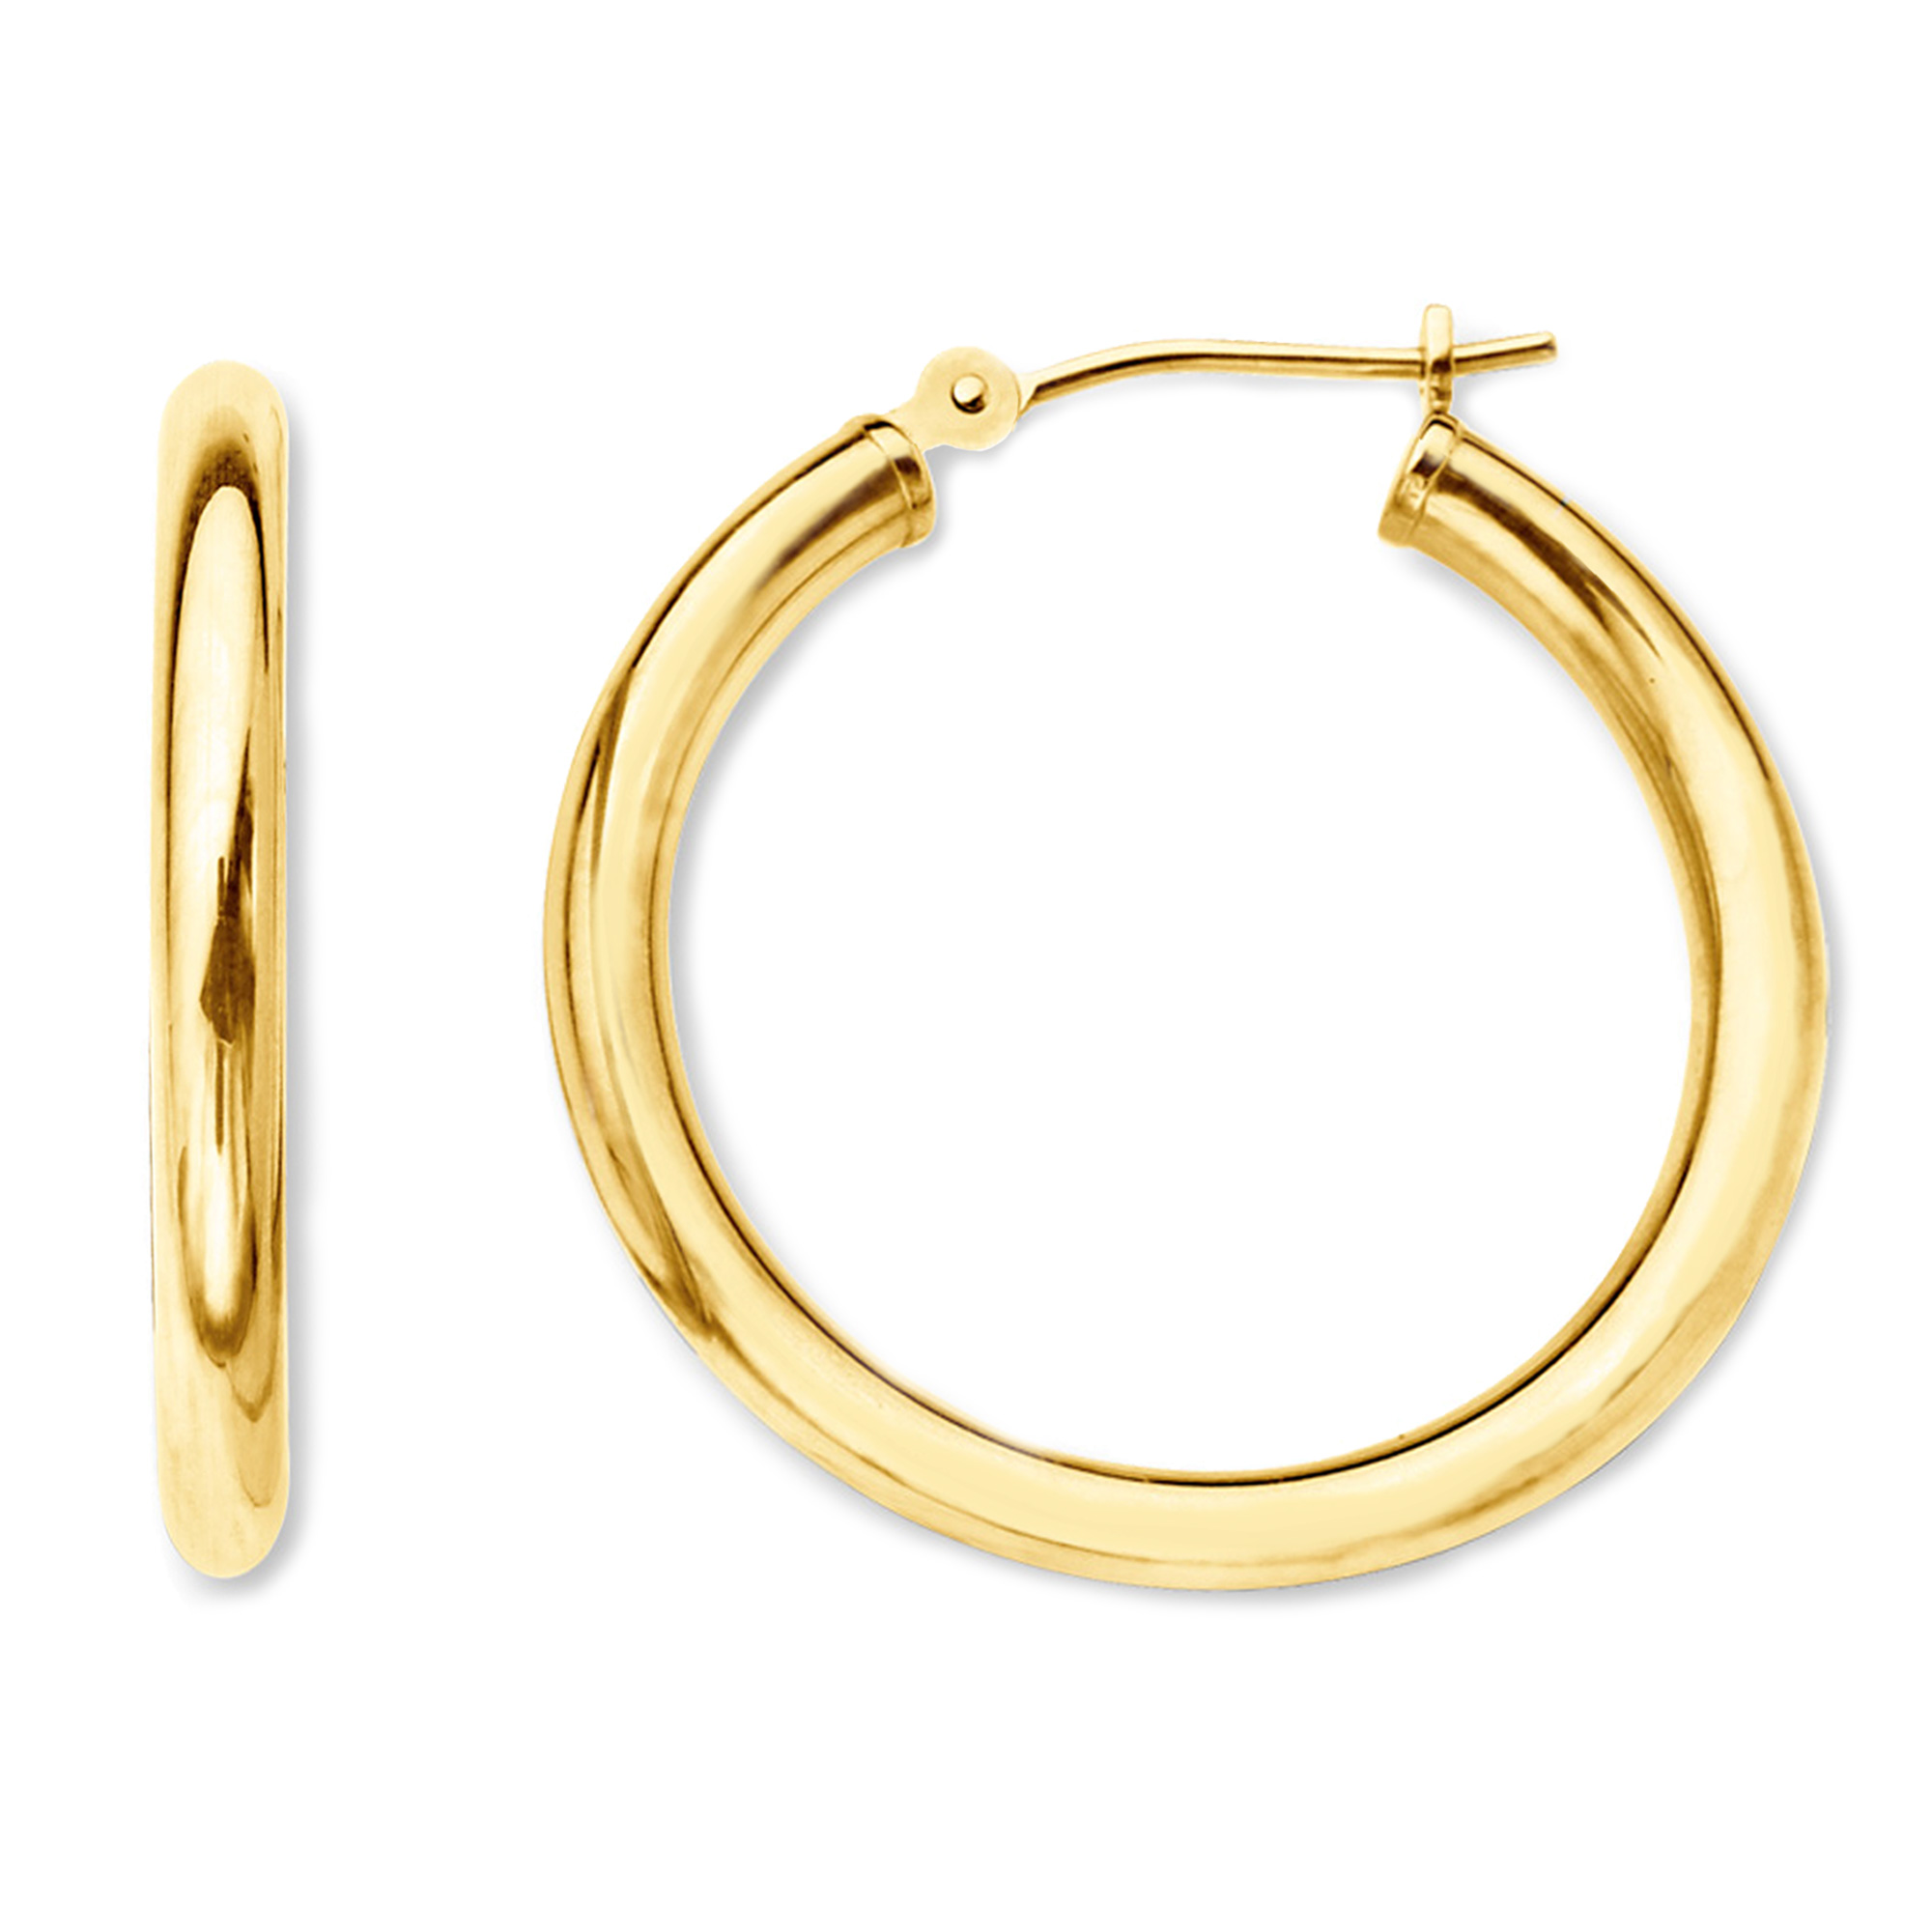 14K Yellow Gold 2MM Shiny Round Tube Hoop Earrings, 40mm Complete your jewelry collection with a gorgeous pair of 14K gold hoop earrings. Whether you prefer large bohemian look or tiny orbs, you'll discover plenty of sizes to match your style. These earrings have a secure snap post clasp making them easy to wear and remove. Earrings come in a  gift box making them ready to be gifted.